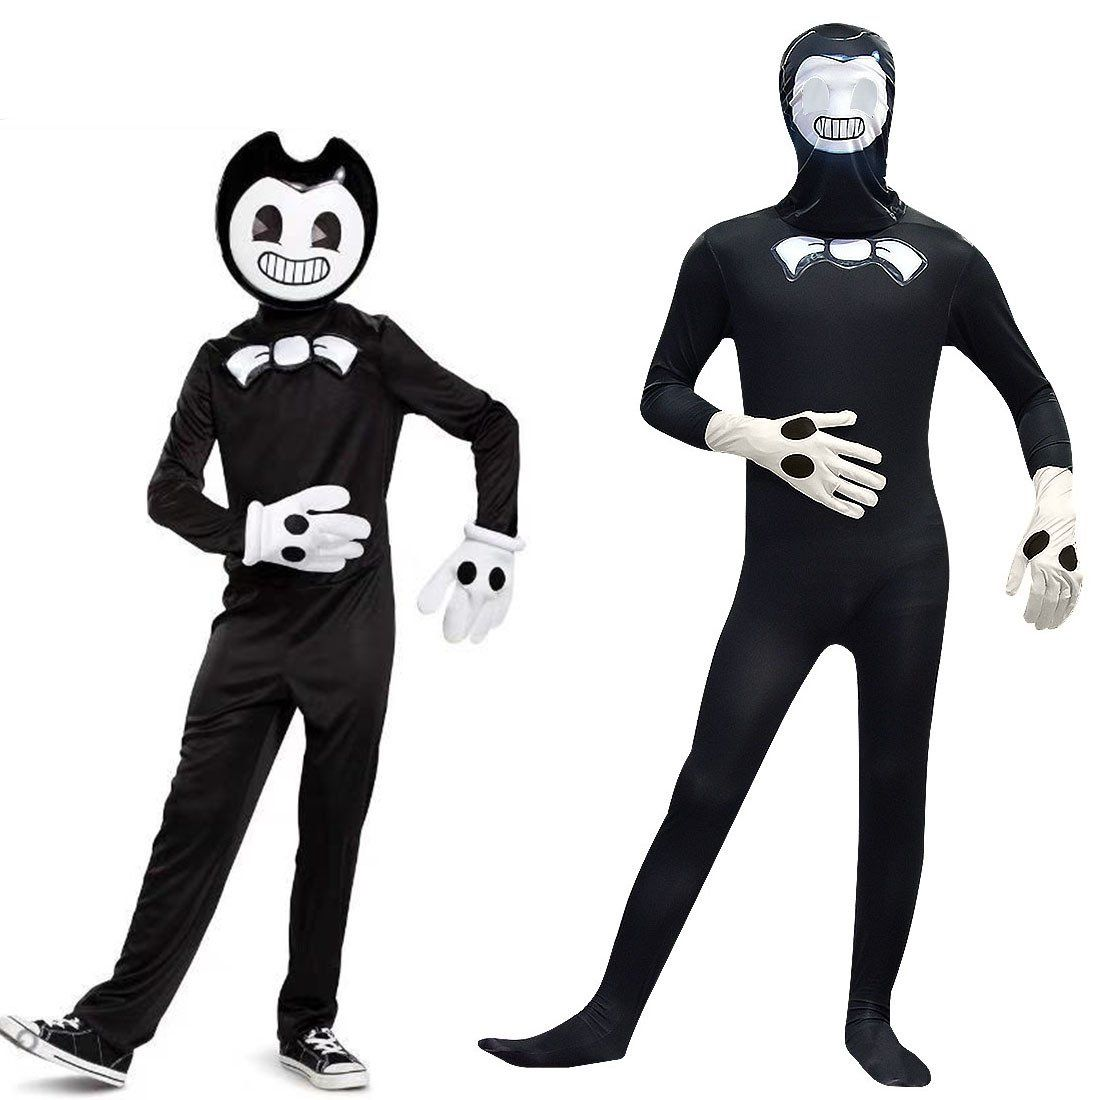 6-14 Years Old Bendy and The Ink Machine Cartoon Boy Fashion Casual Suit